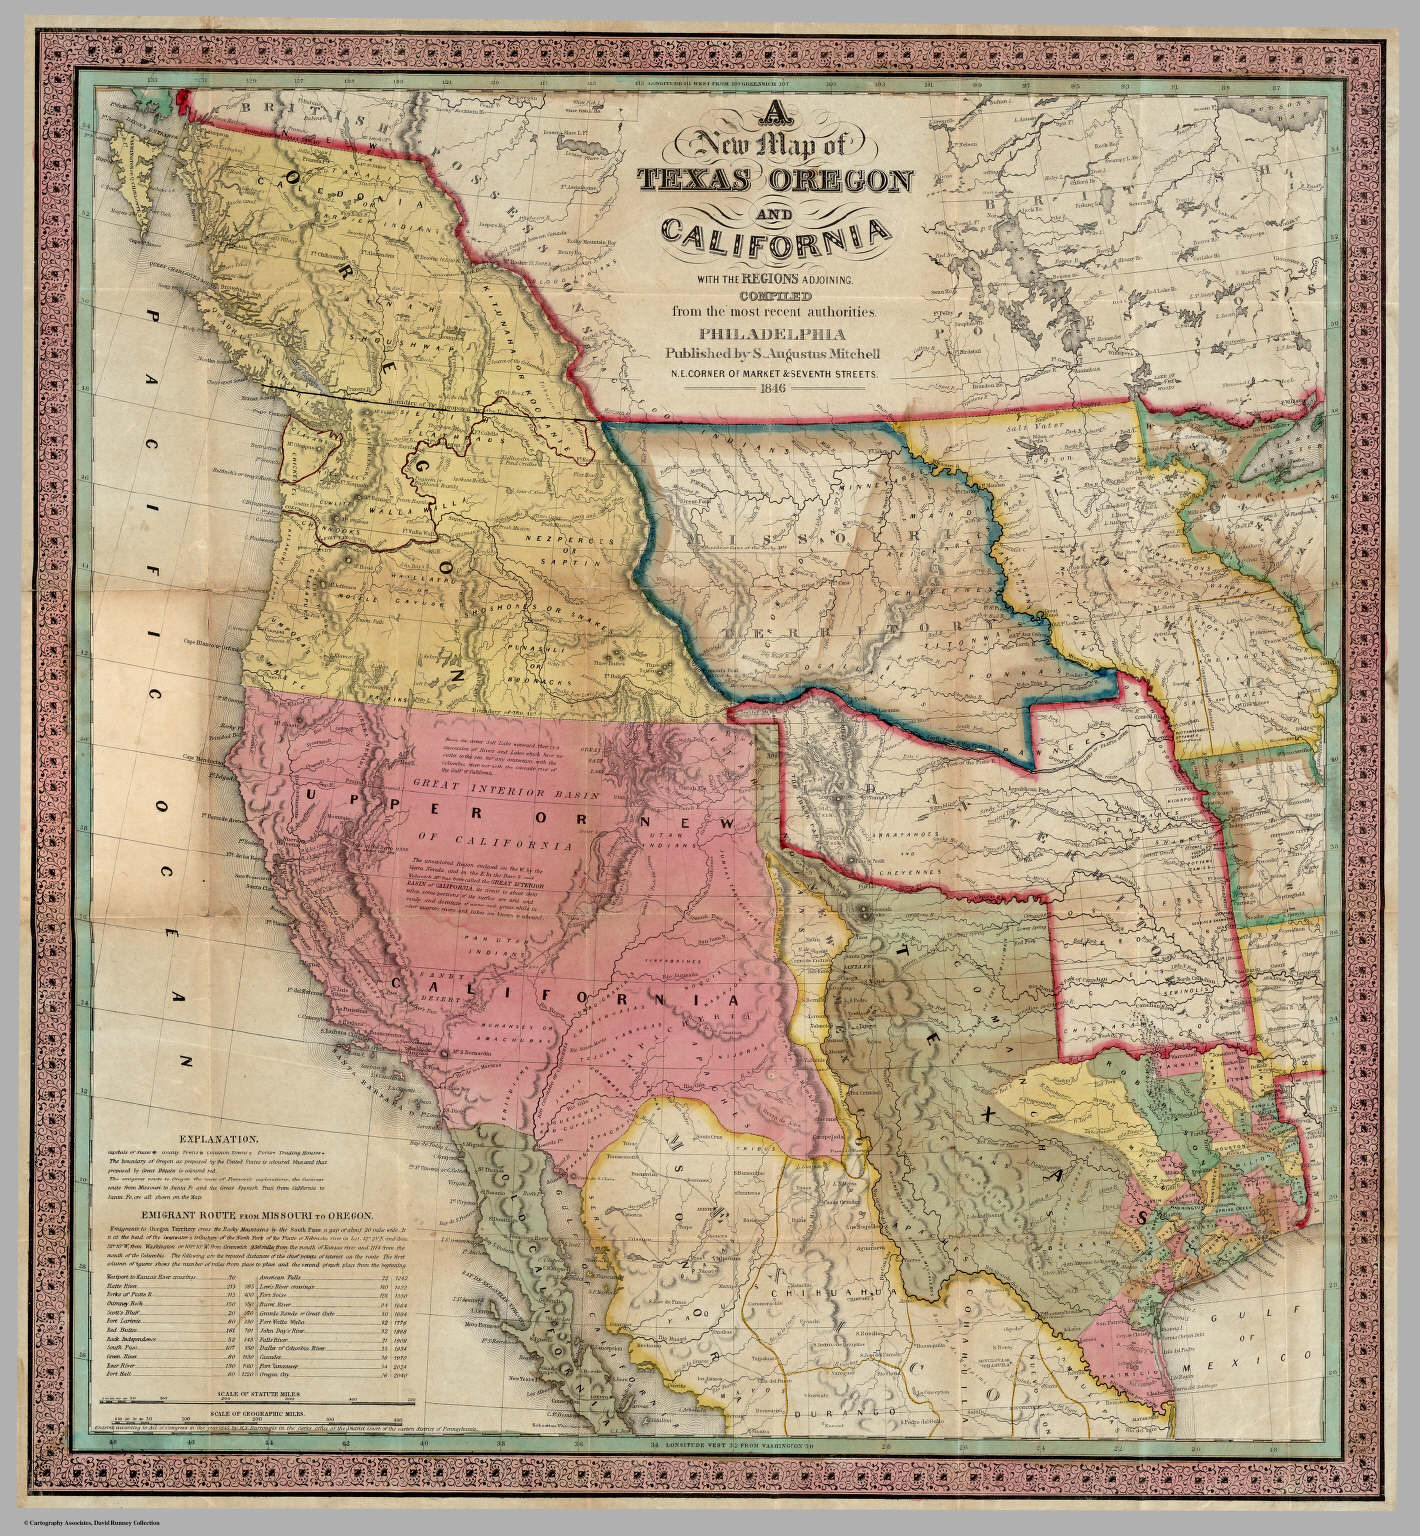 A New Map of Texas Oregon and California With The Regions